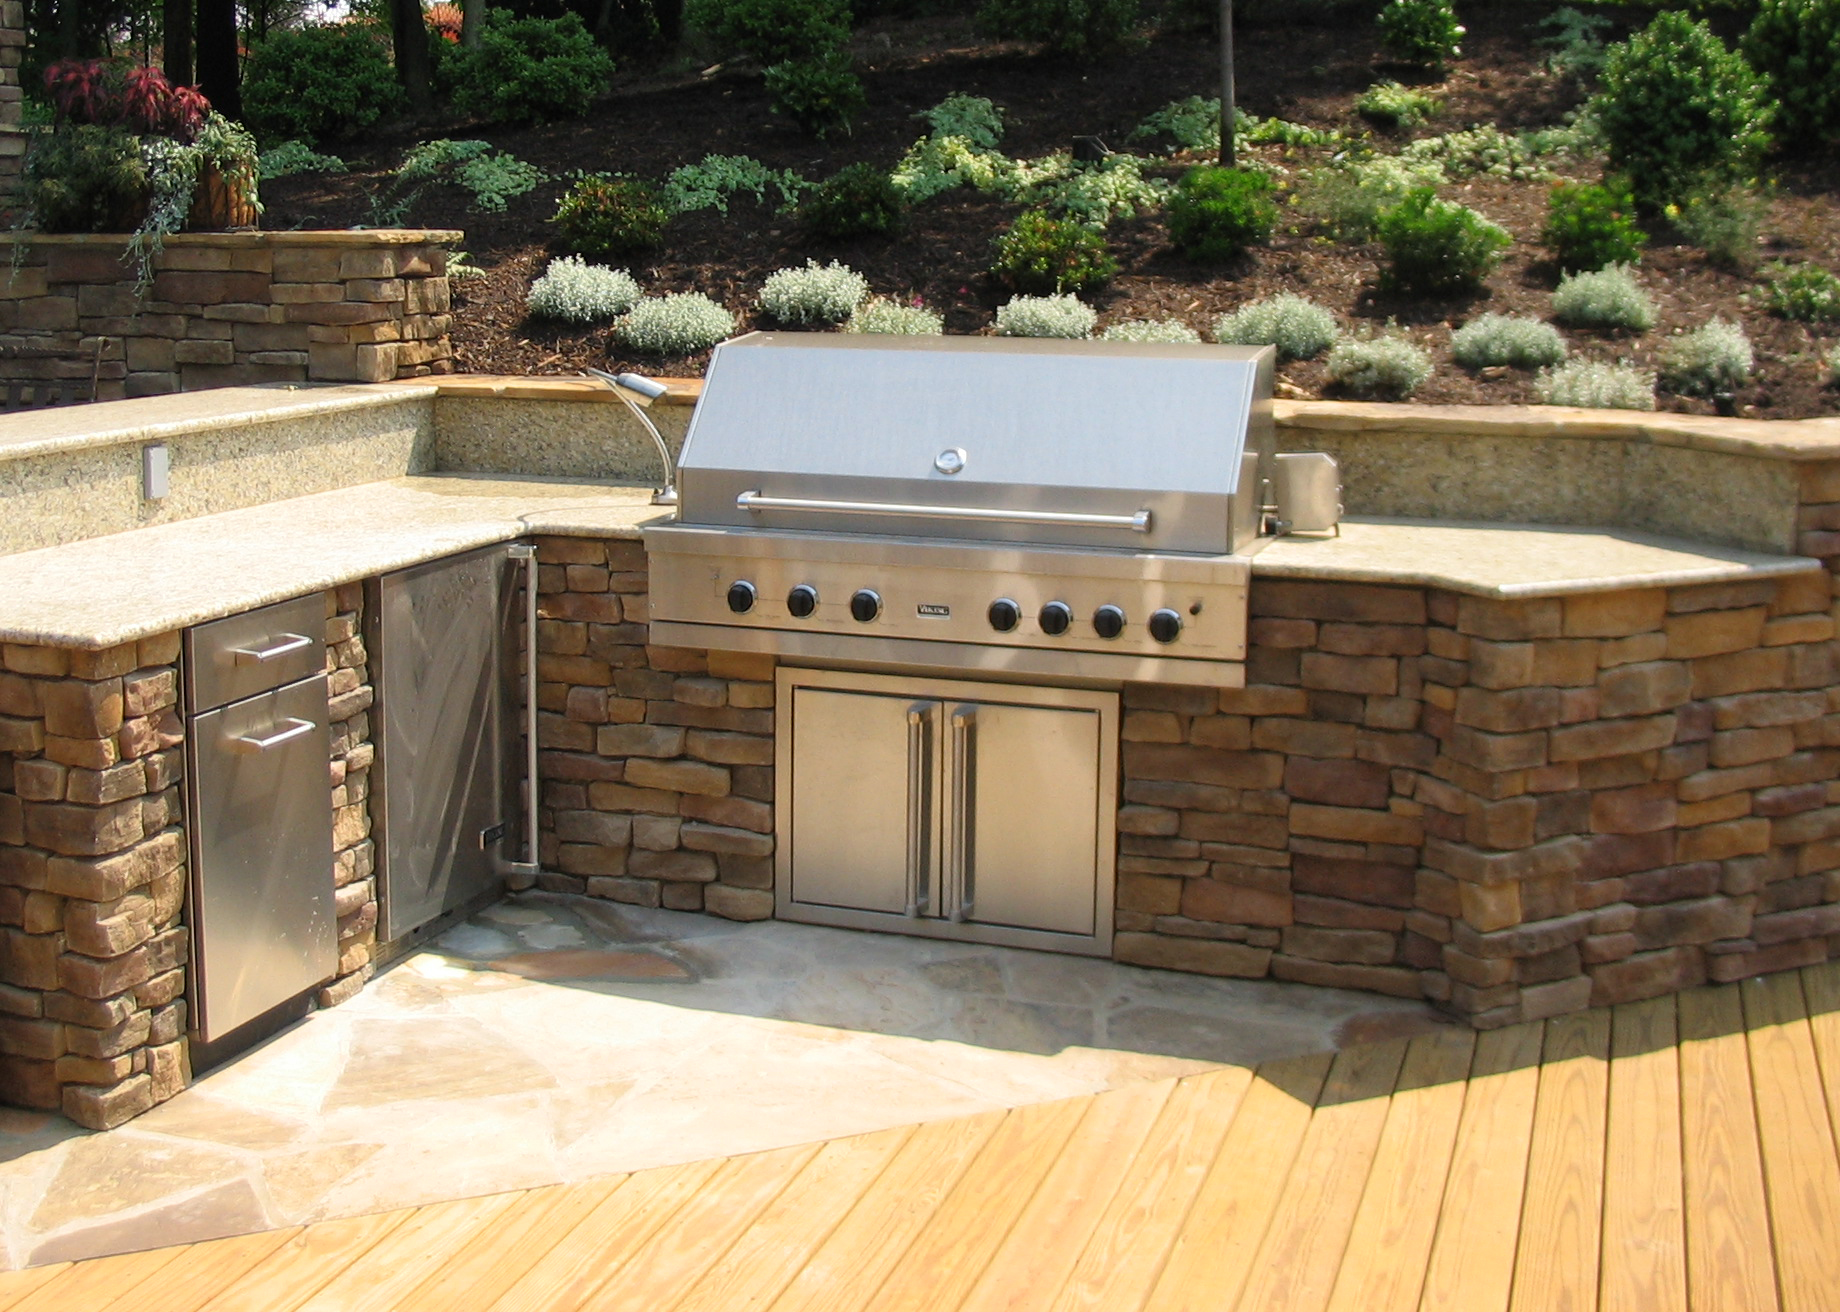 Designing an outdoor kitchen revolutionary gardens for Outdoor bbq designs plans